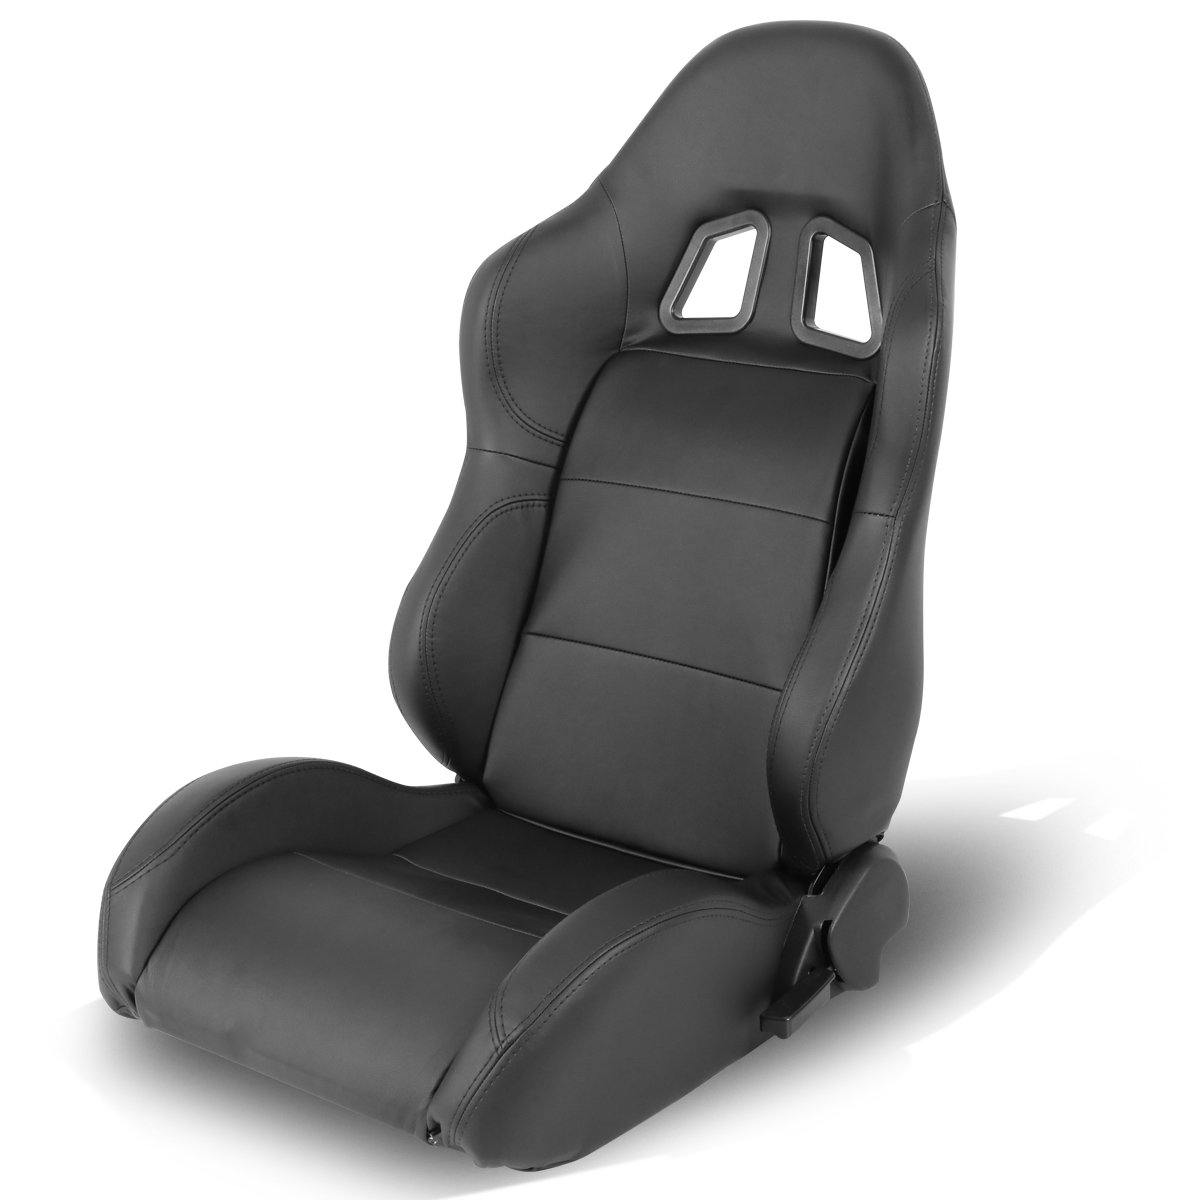 Driver and Passenger Side Universal Black PVC Leather Off-Road Style Fully Reclinable Racing Seats